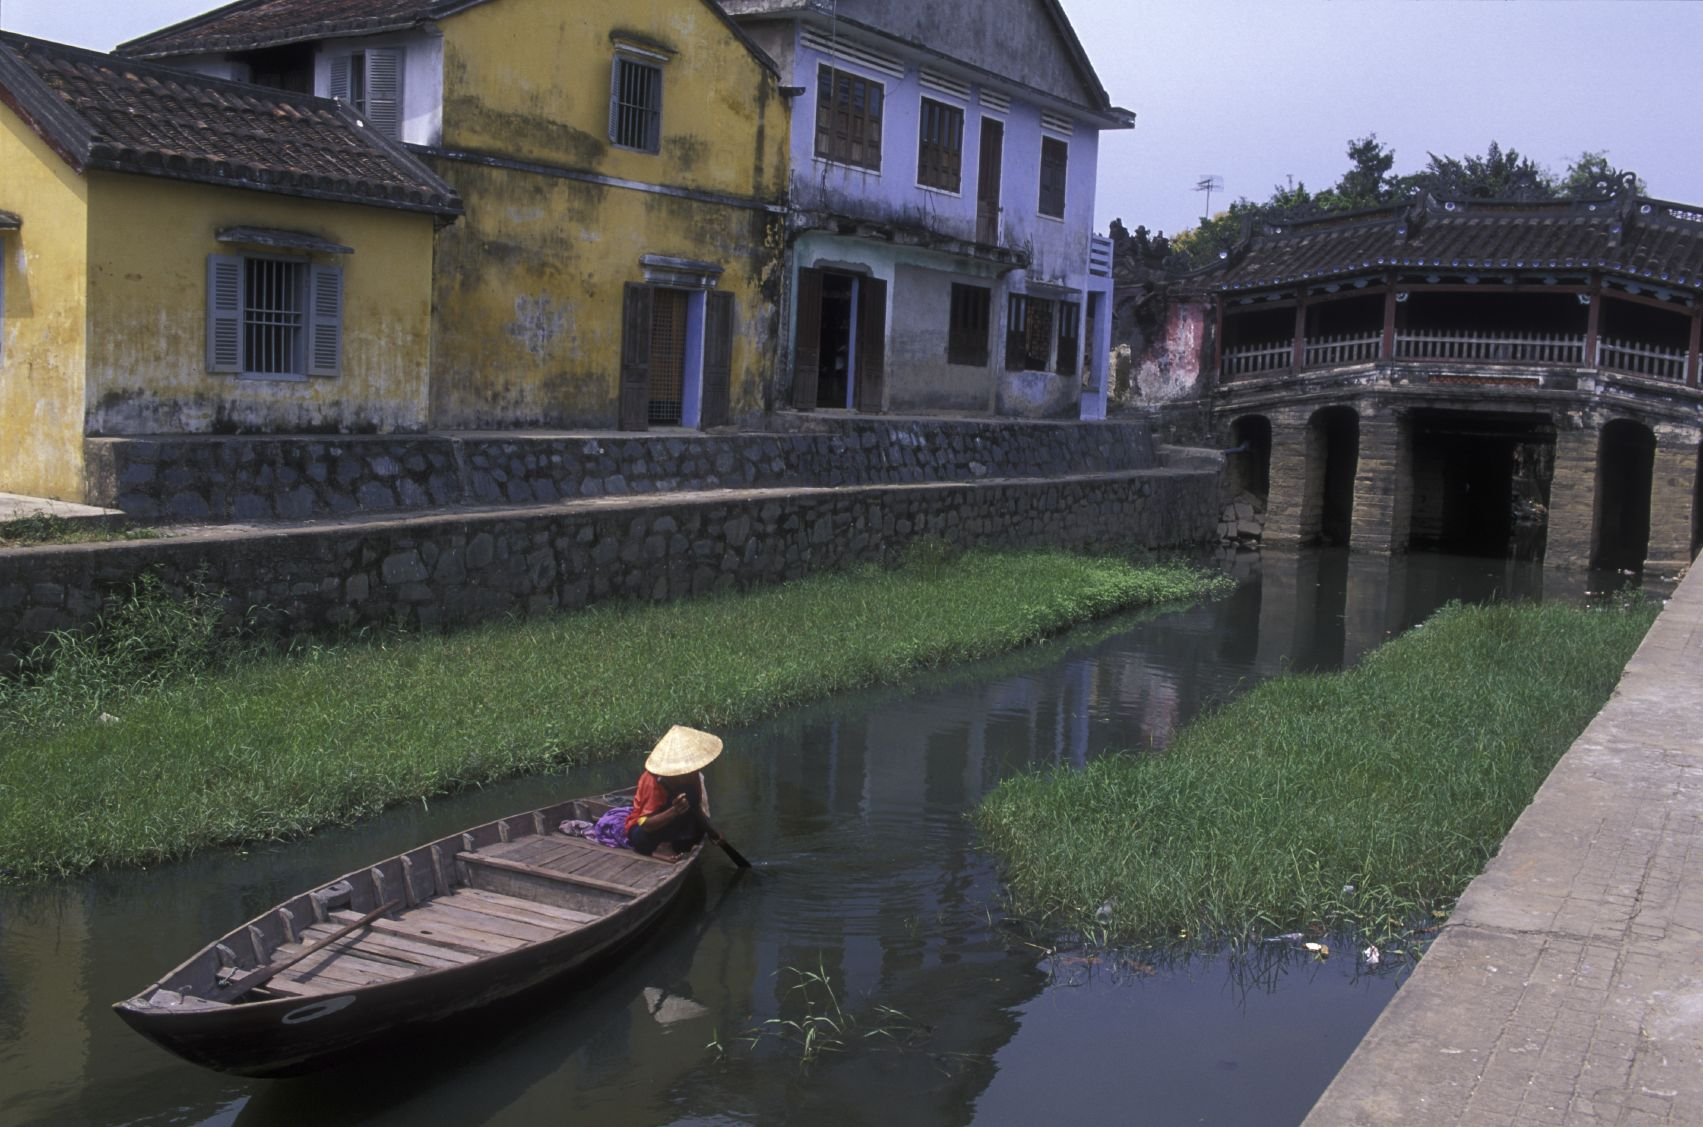 Boat in a canal in Hoi An